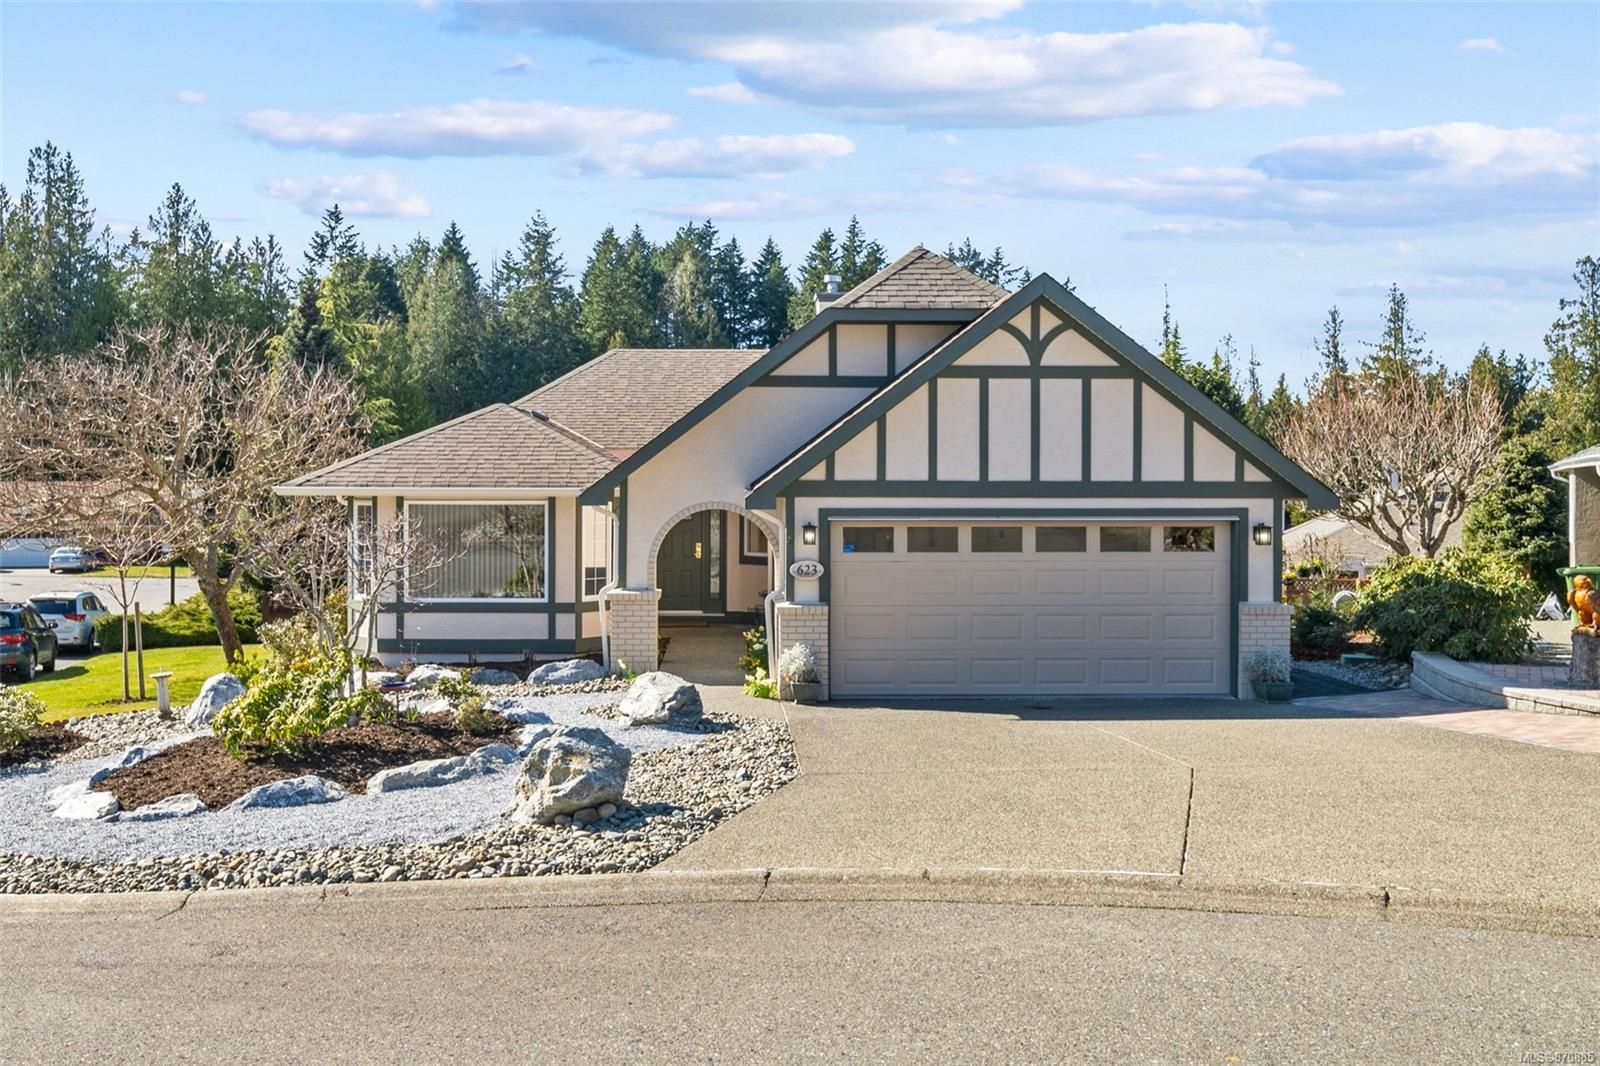 Immaculate rancher style home on a sunny corner lot in beautiful Arbutus Ridge